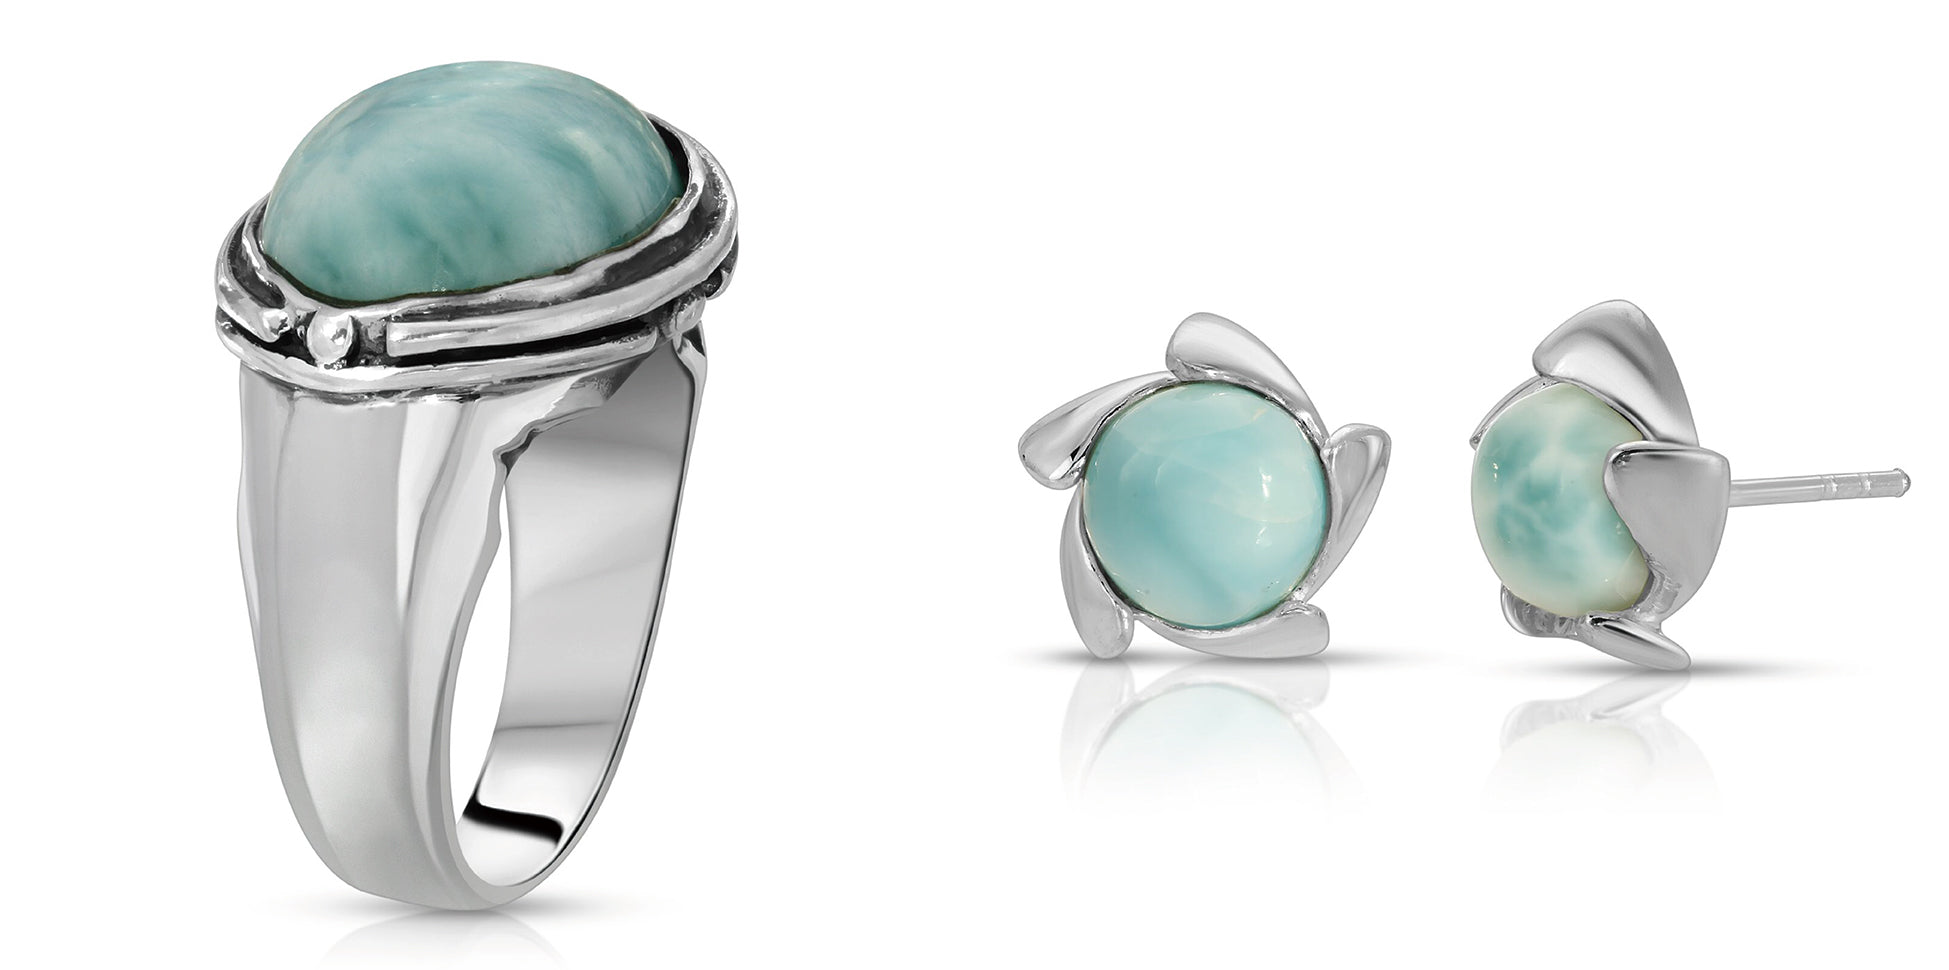 The W Brothers Larimar Oval Ring with our handcrafted Larimar Vortex Earrings designed for fashion and comfort for women or female accessory. Unique style of vintage and modern elegance, crafted with premium Grade A 925 Sterling Silver for a refined look. Available at www.thewbros.com